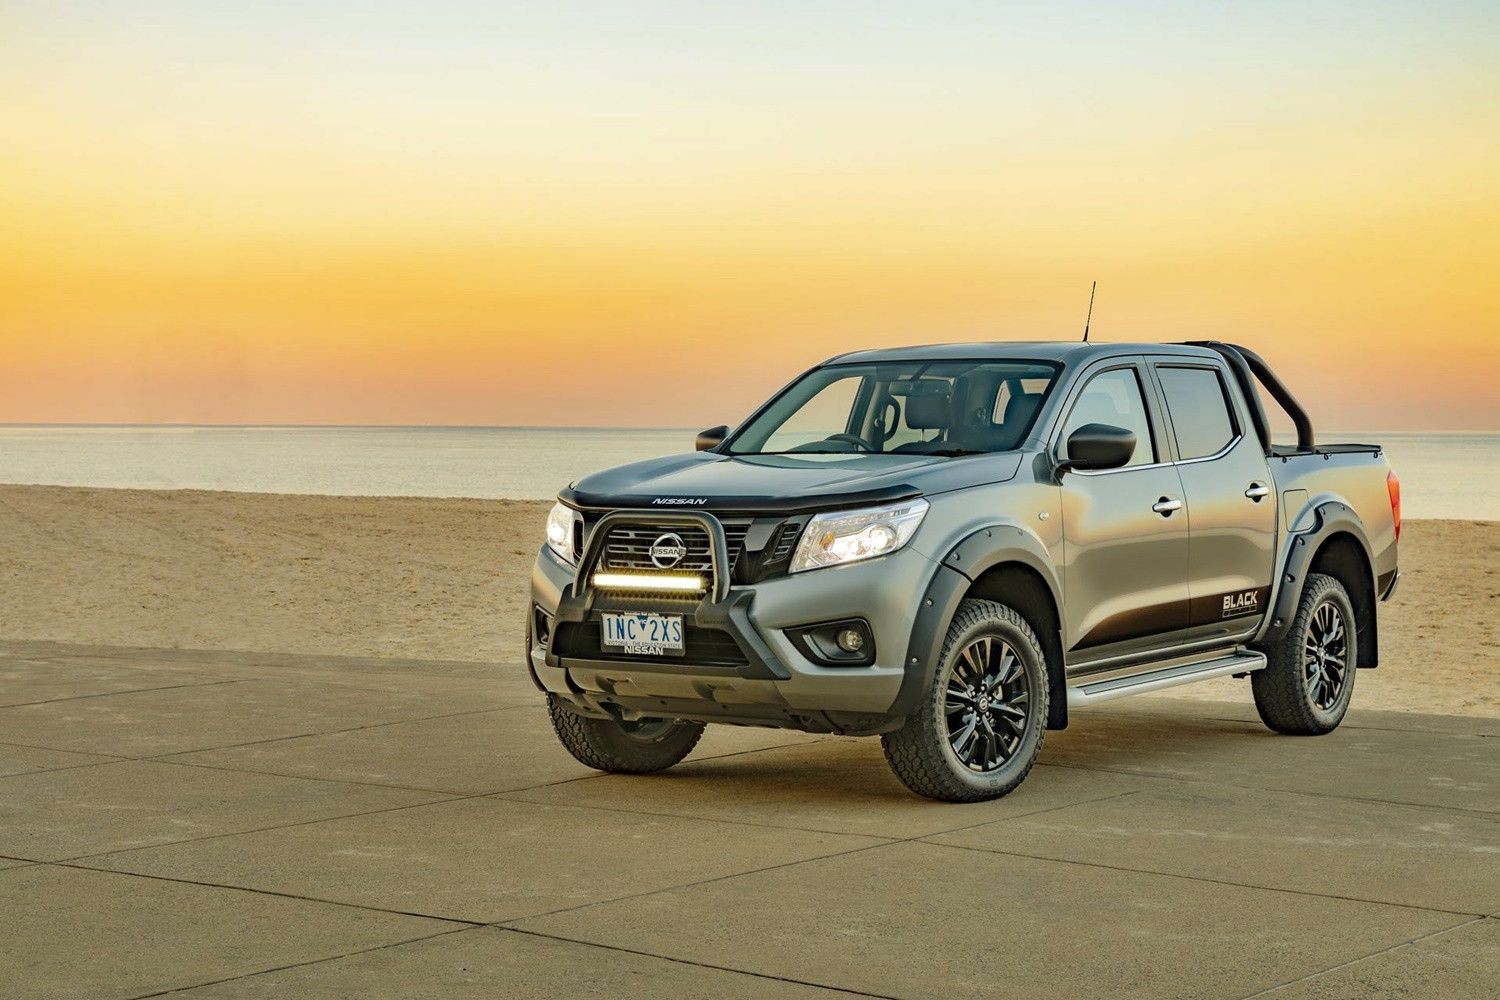 When Will The 2020 Nissan Frontier Be Available Pricecar Update 2020 Di 2020